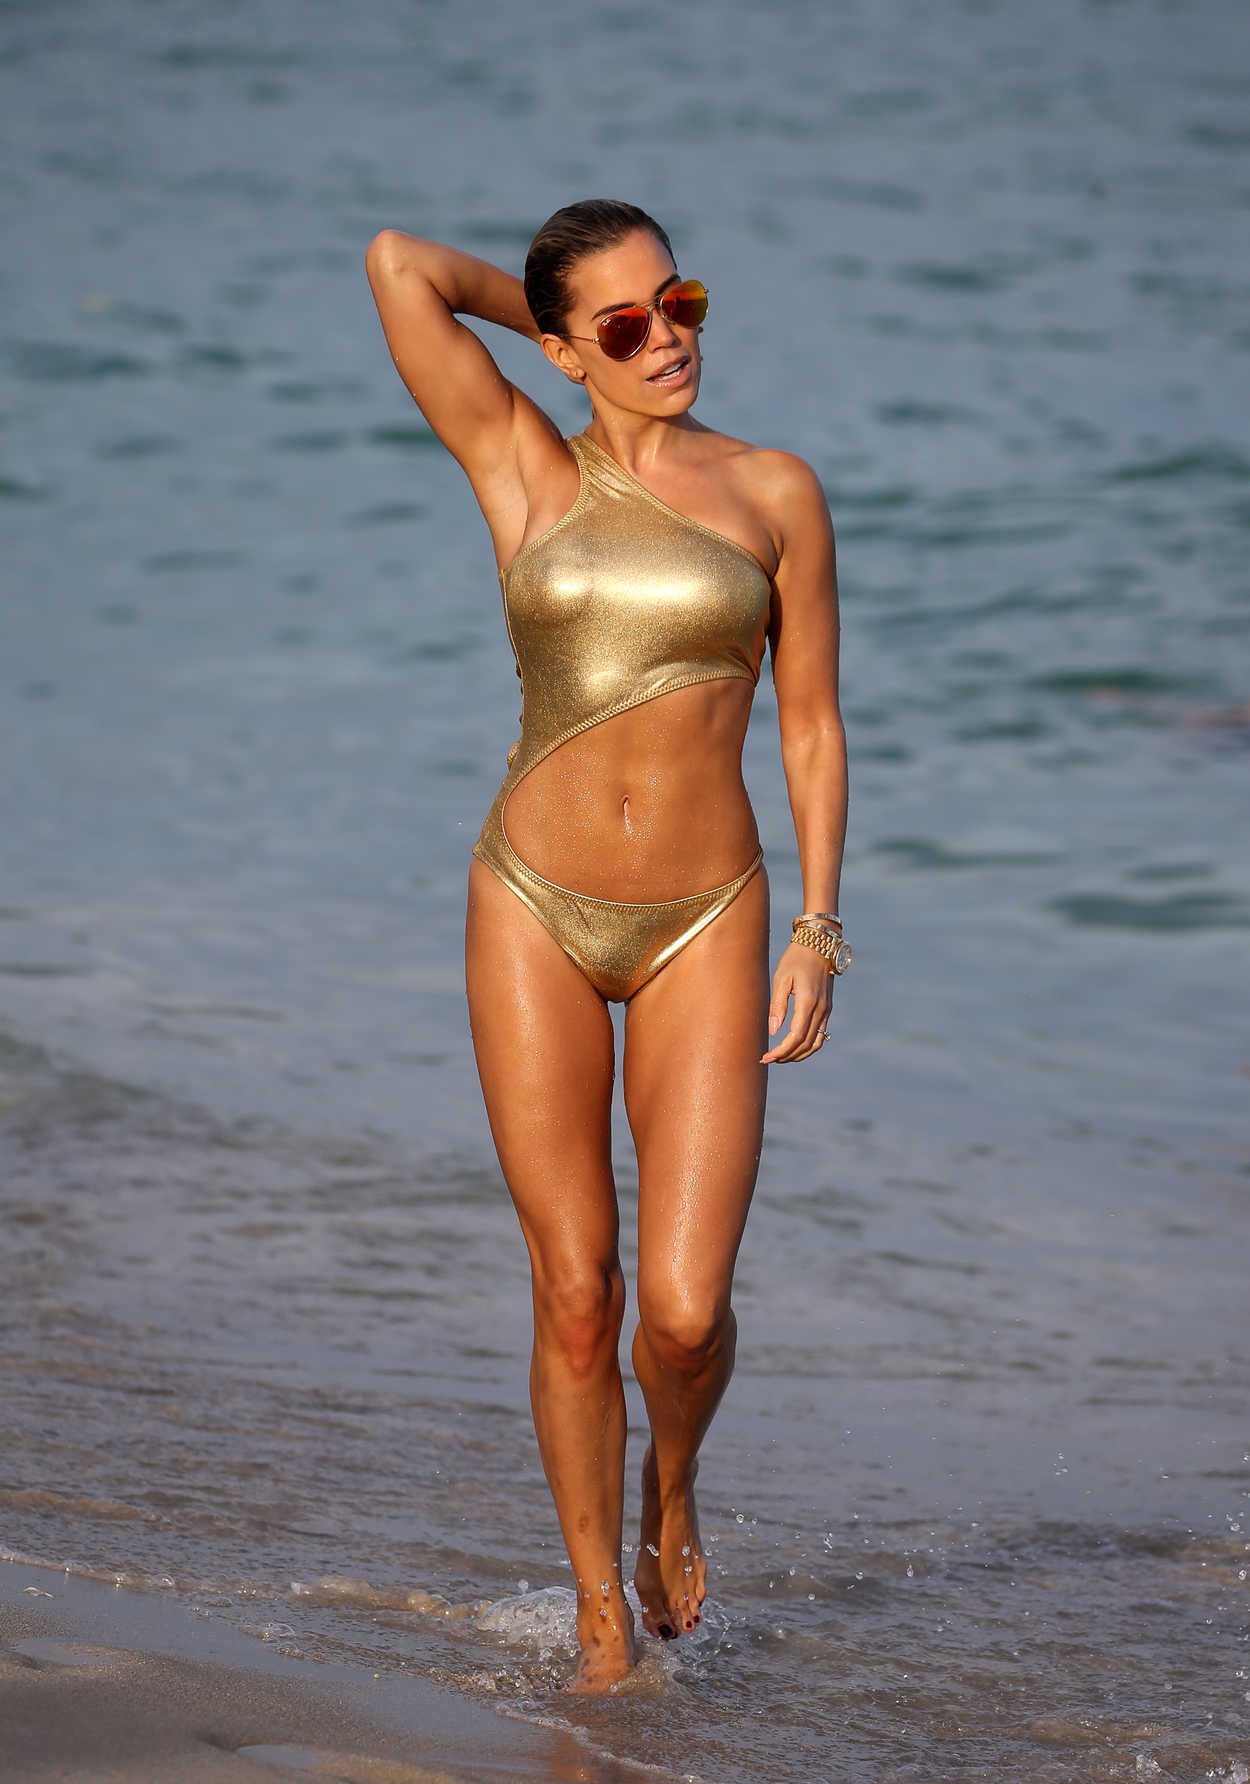 sylvie meis wears a gold bikini at the beach in miami 01 01 2018. Black Bedroom Furniture Sets. Home Design Ideas